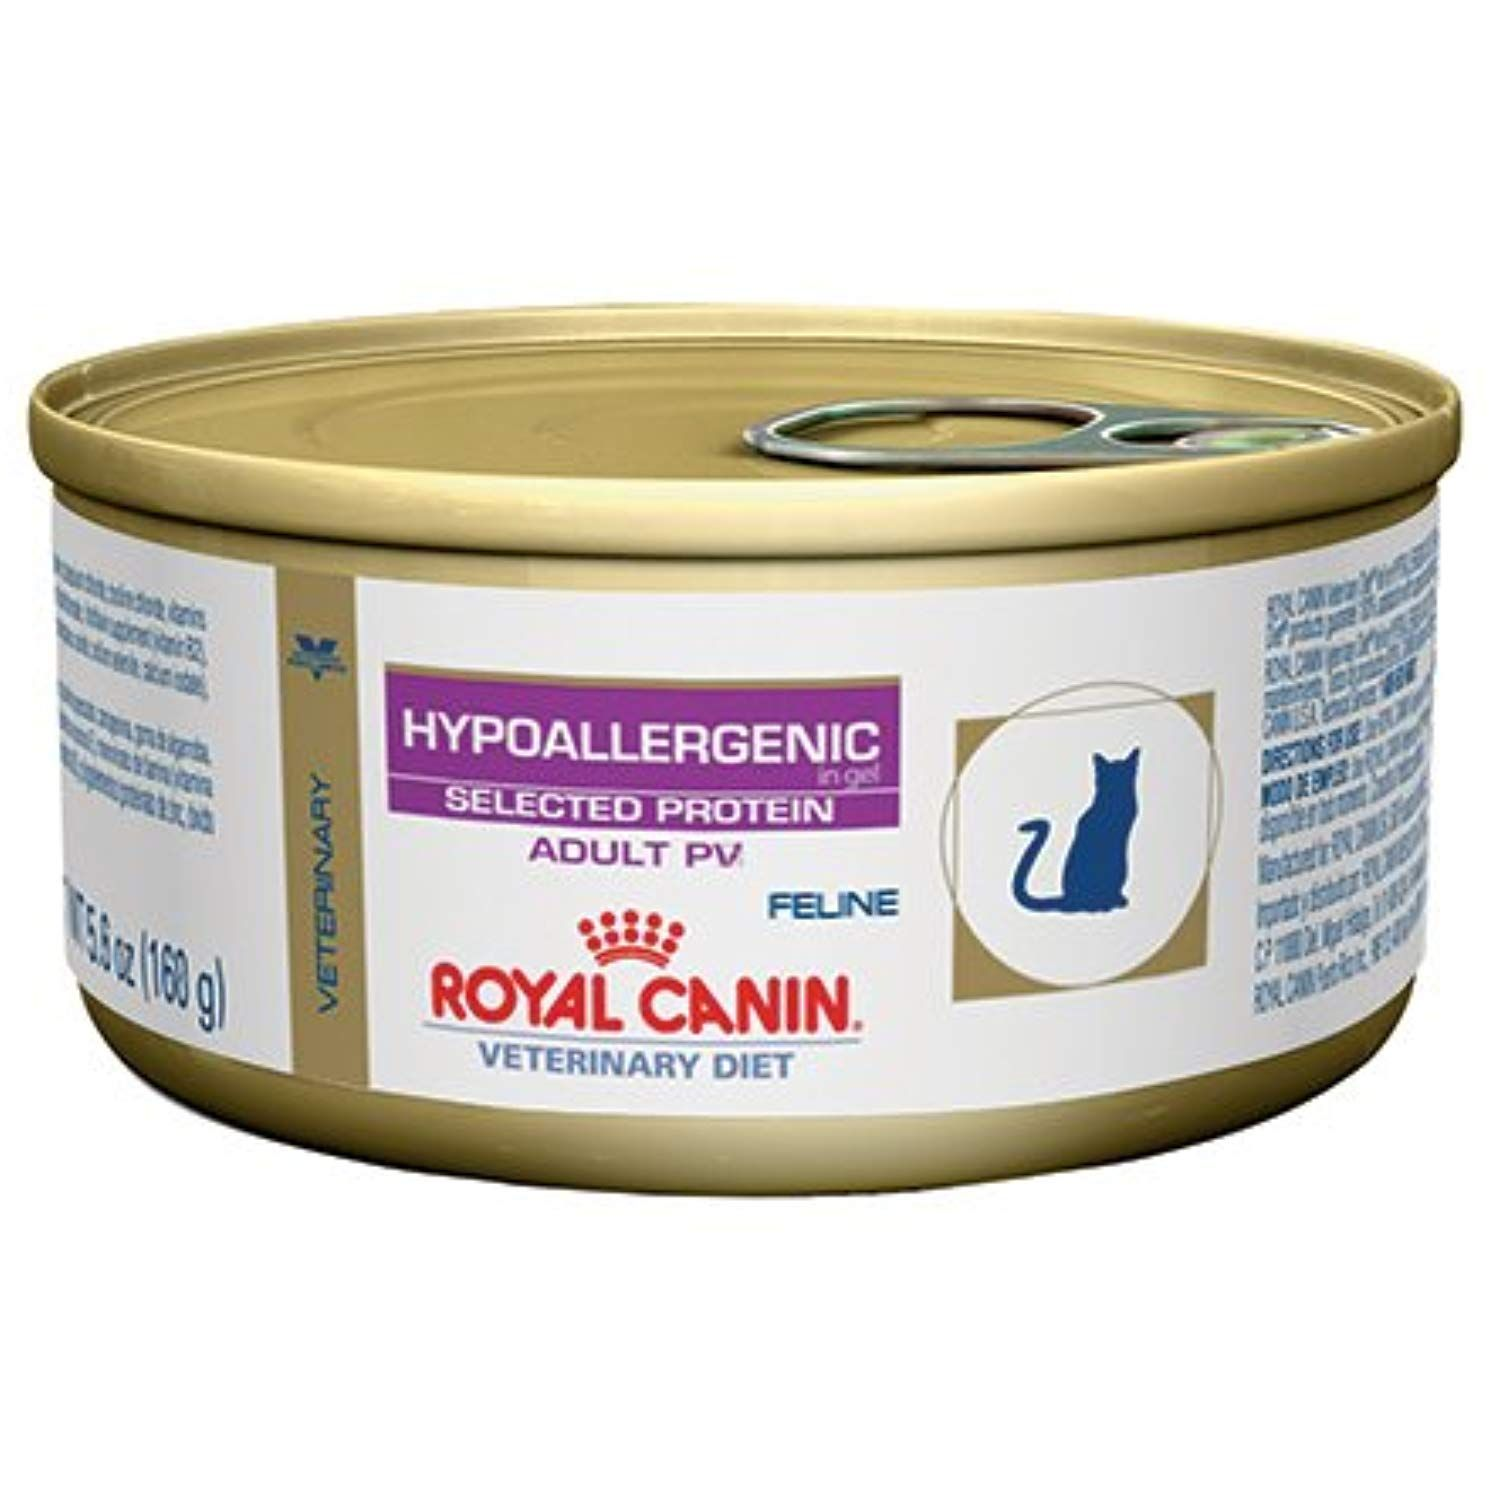 Royal Canin Veterinary Diet Feline Hypoallergenic Potato And Venison Pv Formula Canned Cat Food 24 5 6 Oz Ca Canned Cat Food Cat Food Hypoallergenic Cat Food